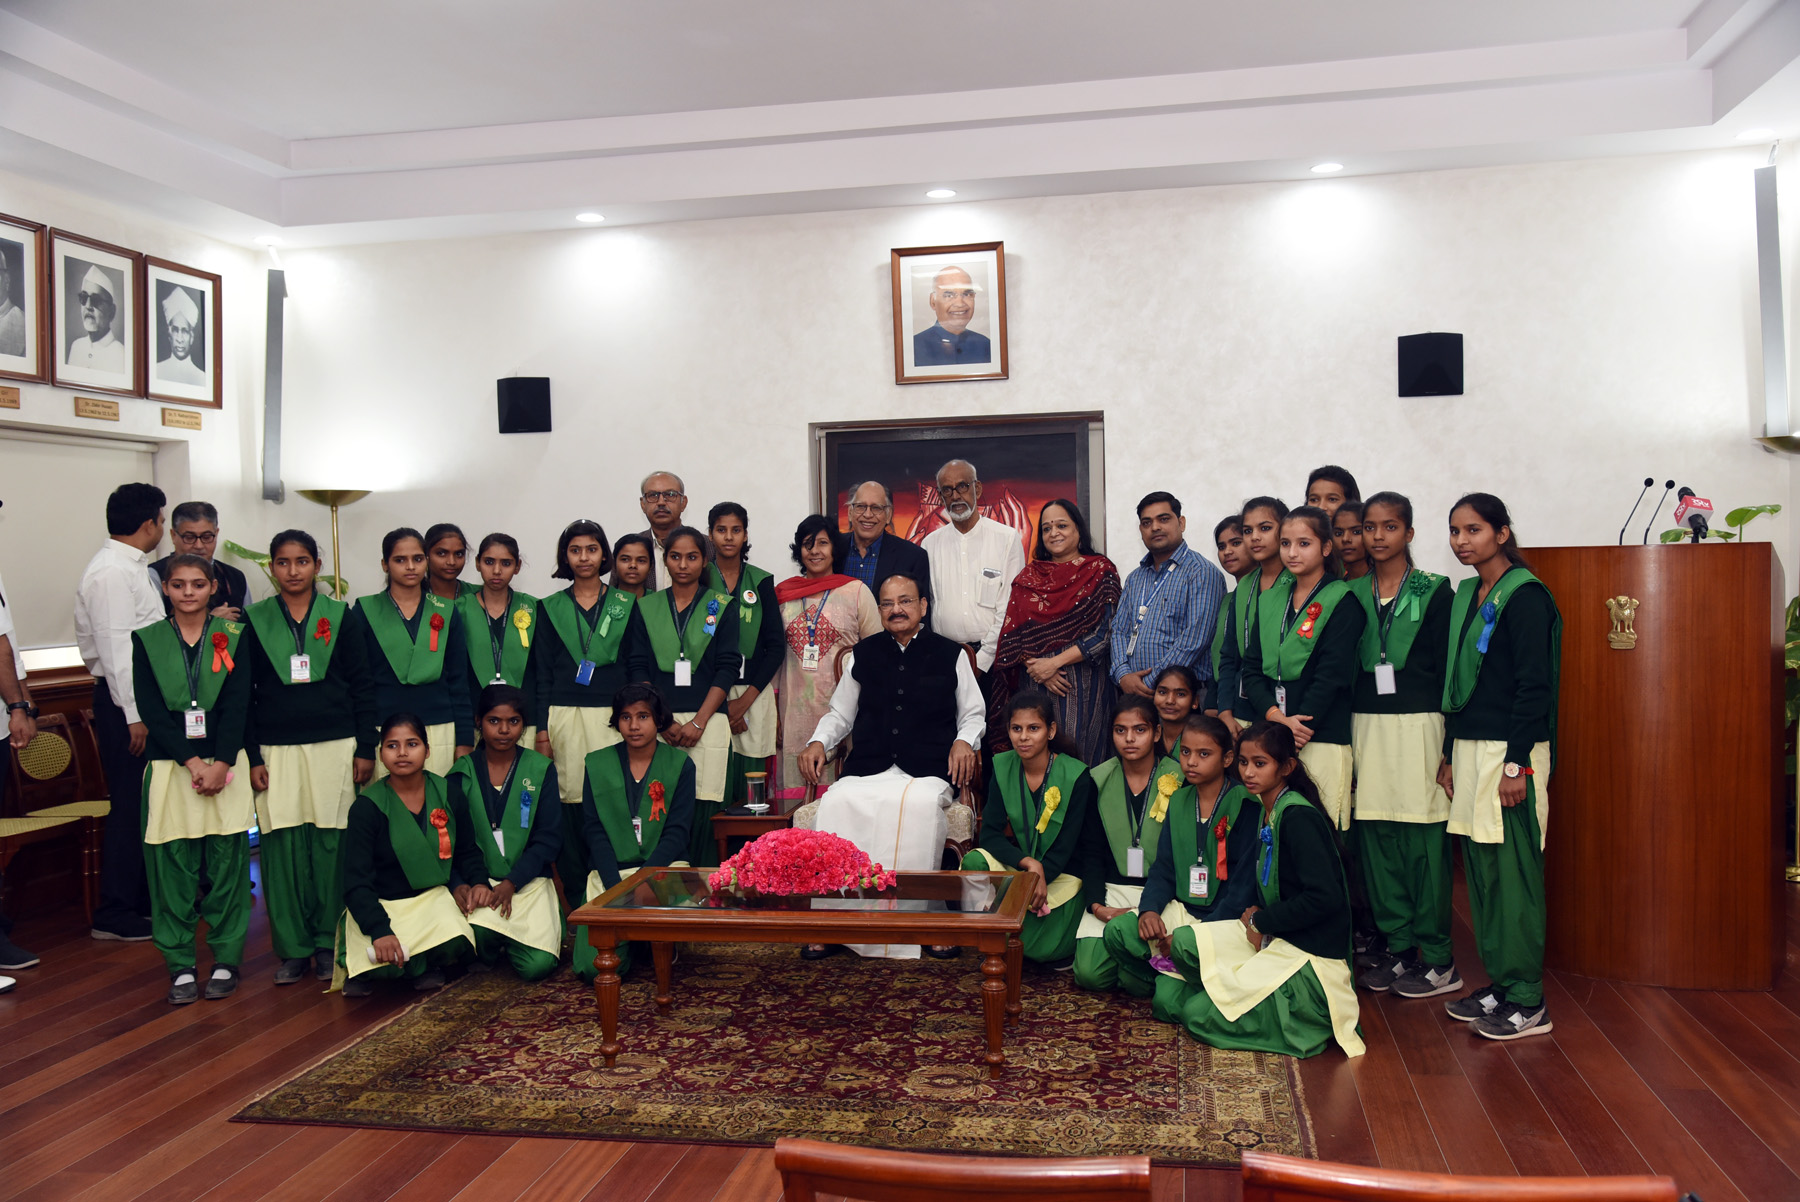 The Vice President, Shri M. Venkaiah Naidu with the students from 'Pardada Pardadi Educational Society' on the occasion of Children's Day, in New Delhi on 14 November, 2019.